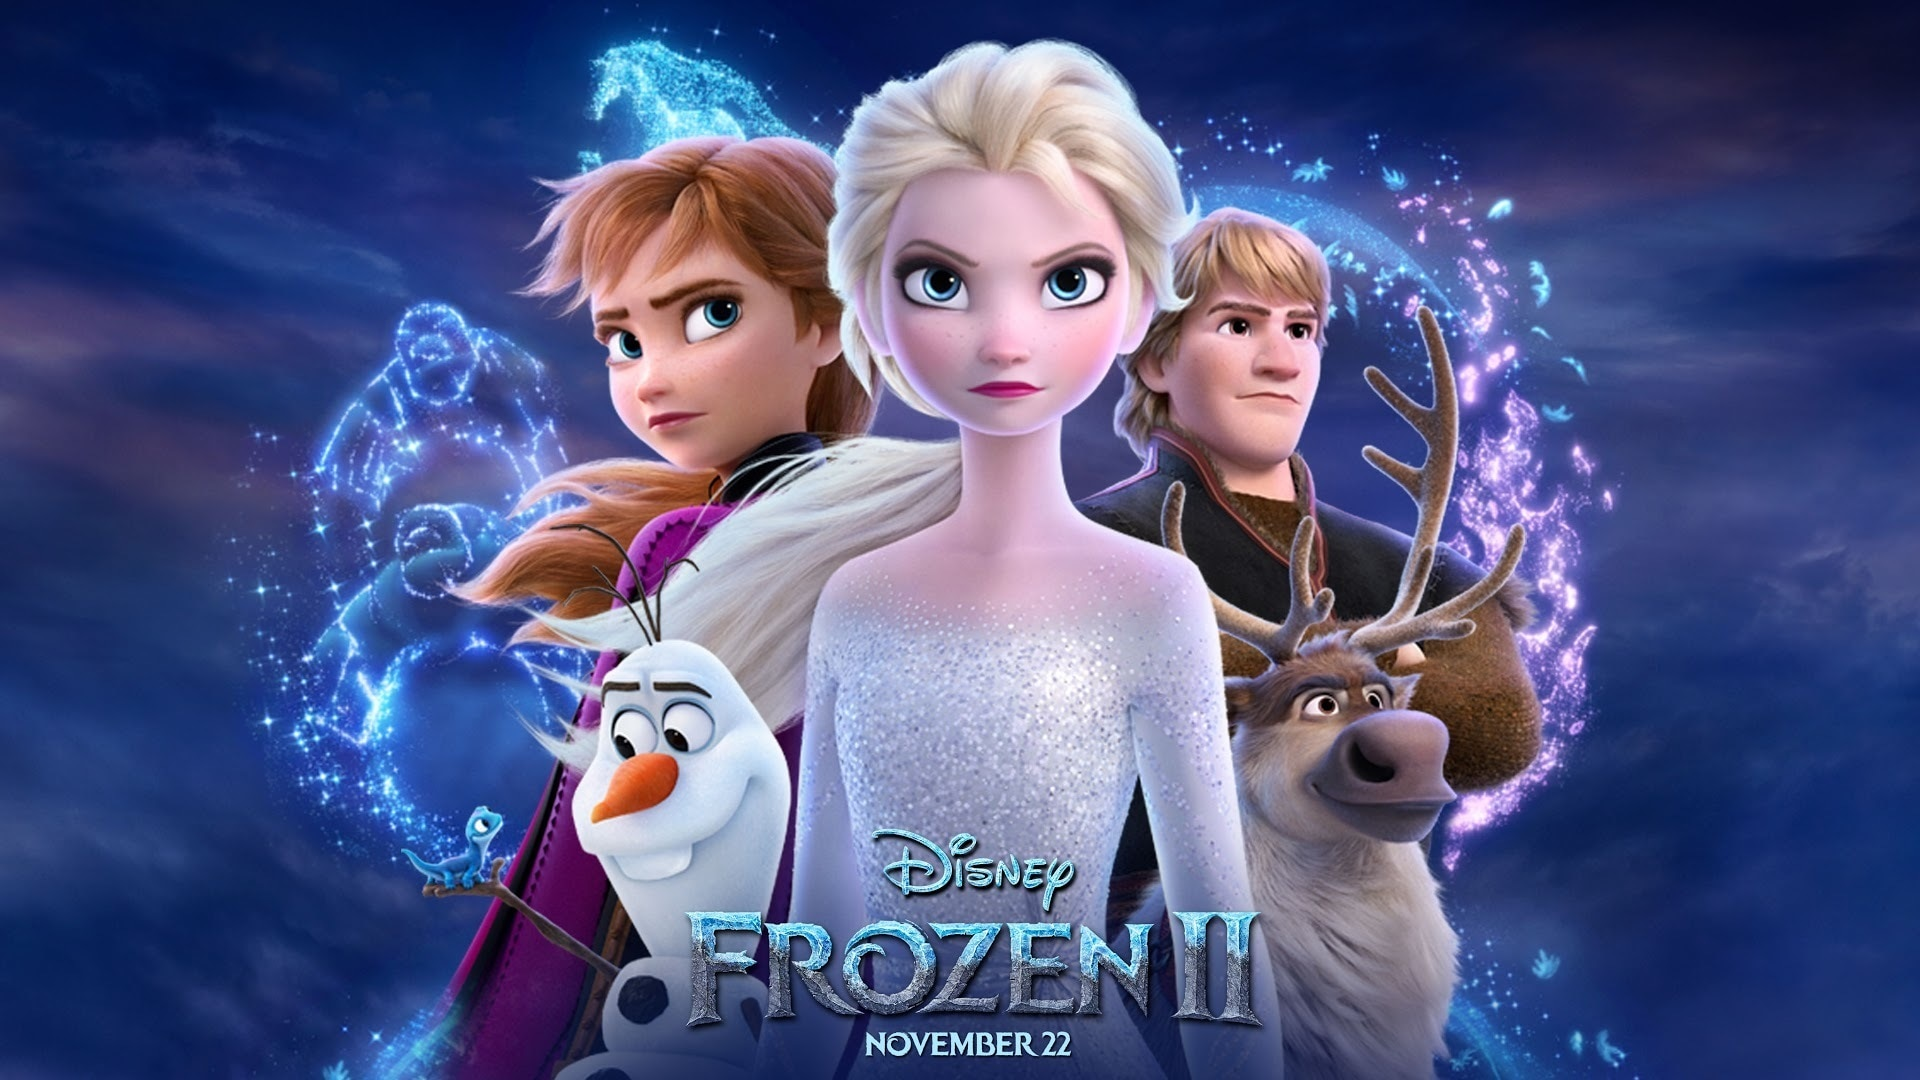 Frozen 2 - In Theaters November 22!